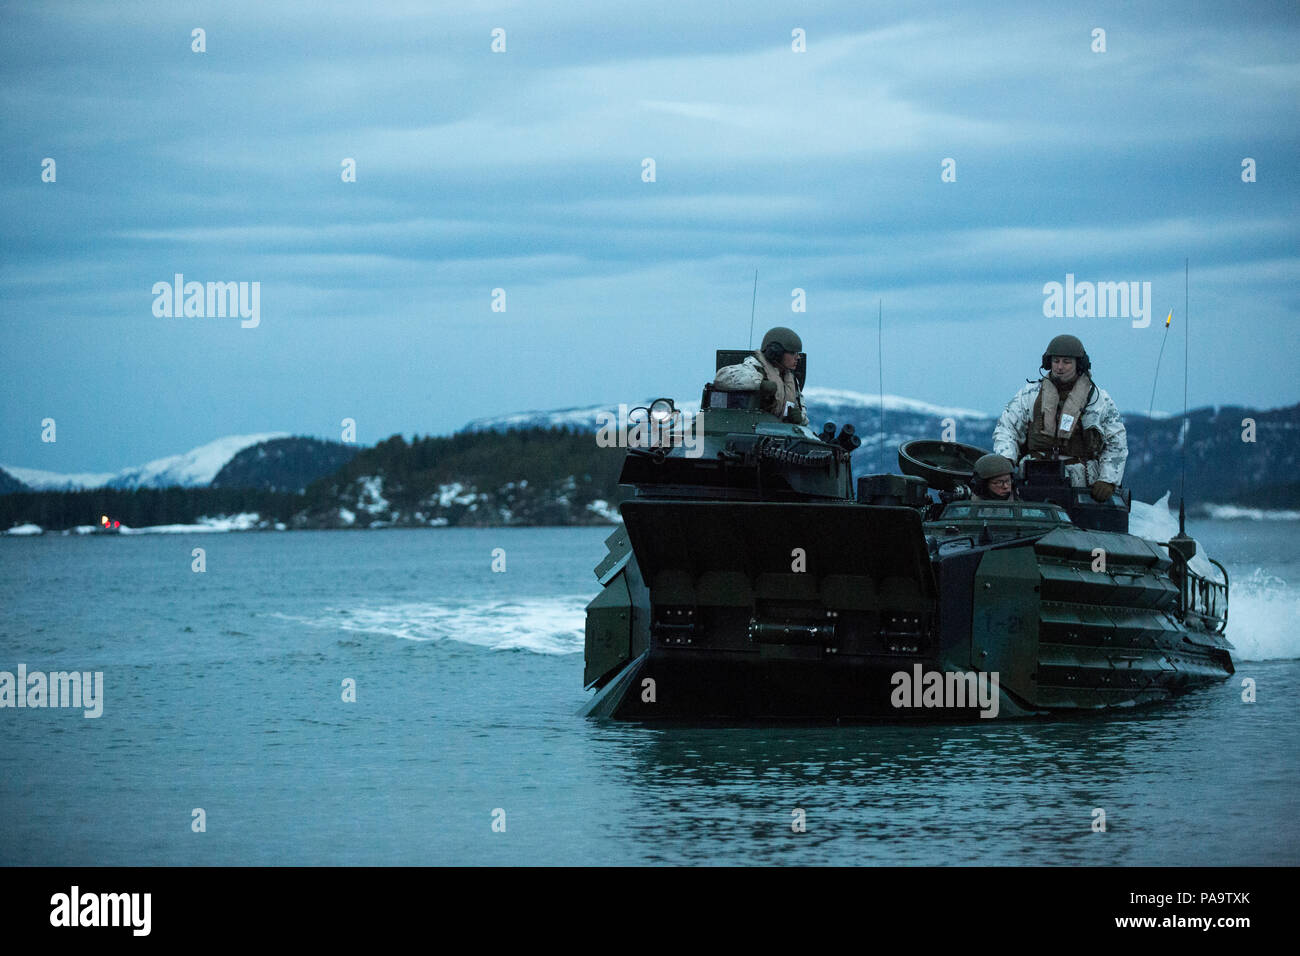 An amphibious assault vehicle prepares to make a beach landing during Exercise Cold Response 16 March 3, 2016, in Namsos, Norway.  The exercise is a Norwegian invitational comprised of 13 NATO partners and allies working together to strengthen partnerships and crisis response capabilities. (U.S. photo released by Sgt. Kirstin Merrimarahajara/Released) Stock Photo